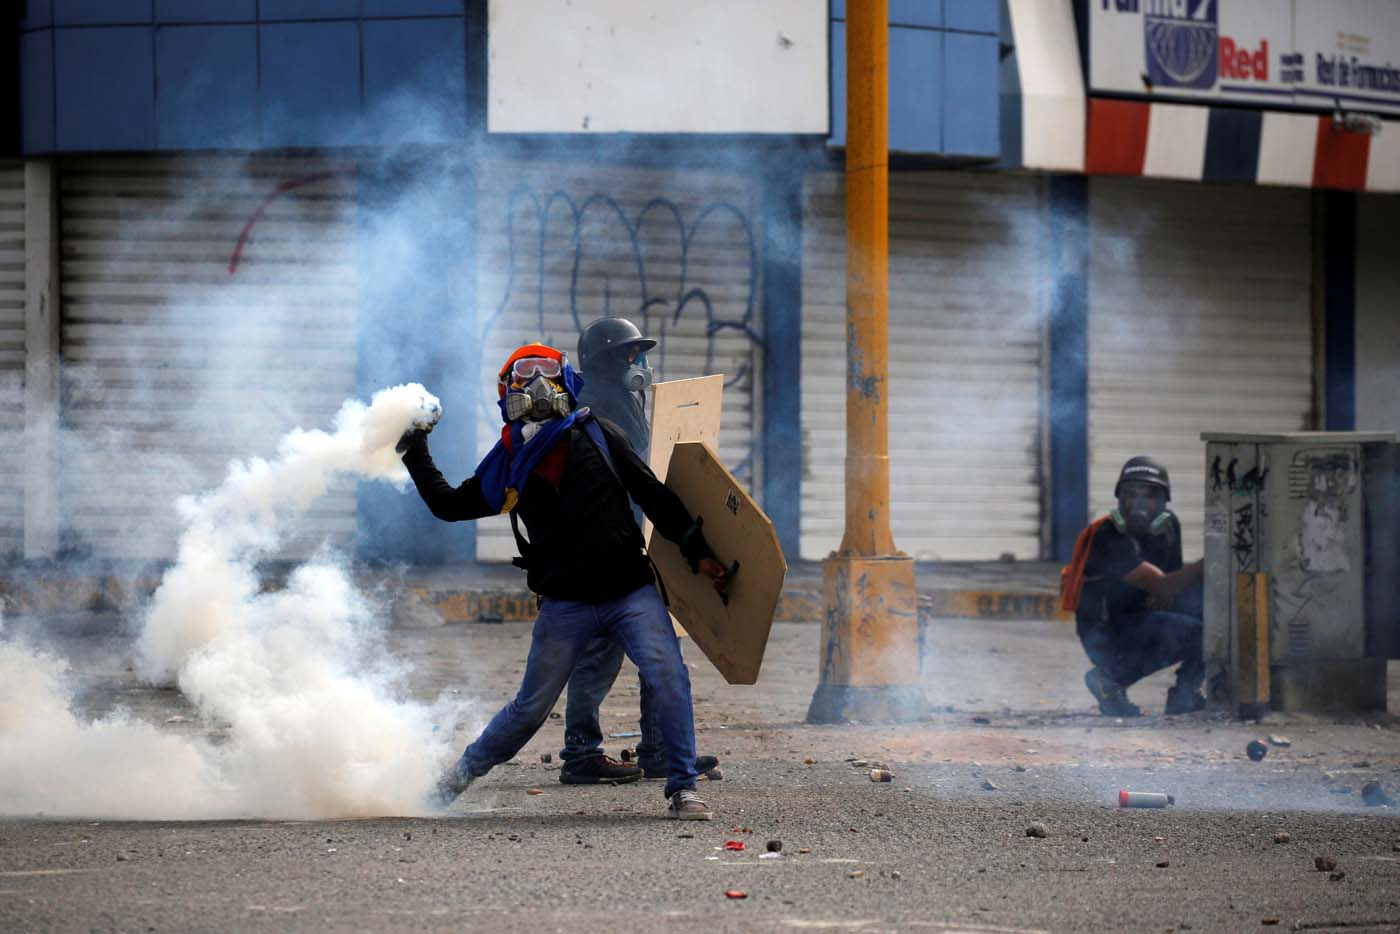 A demonstrator throws back a tear gas canister while clashing with riot security forces during a rally against President Nicolas Maduro in Caracas, Venezuela, May 24, 2017. REUTERS/Carlos Barria